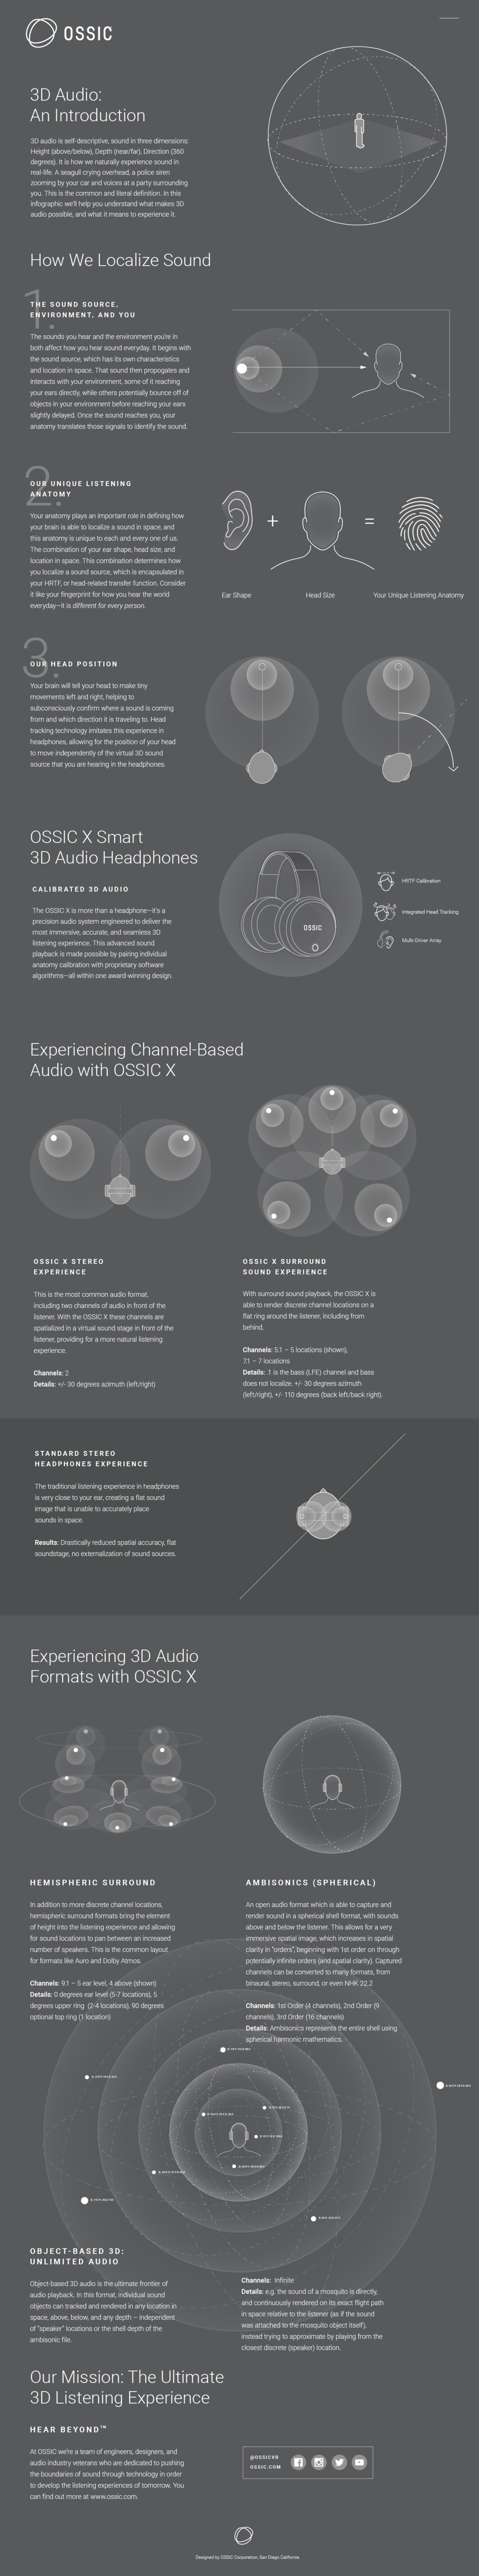 OSSIC 3D Audio Infographic 5.png